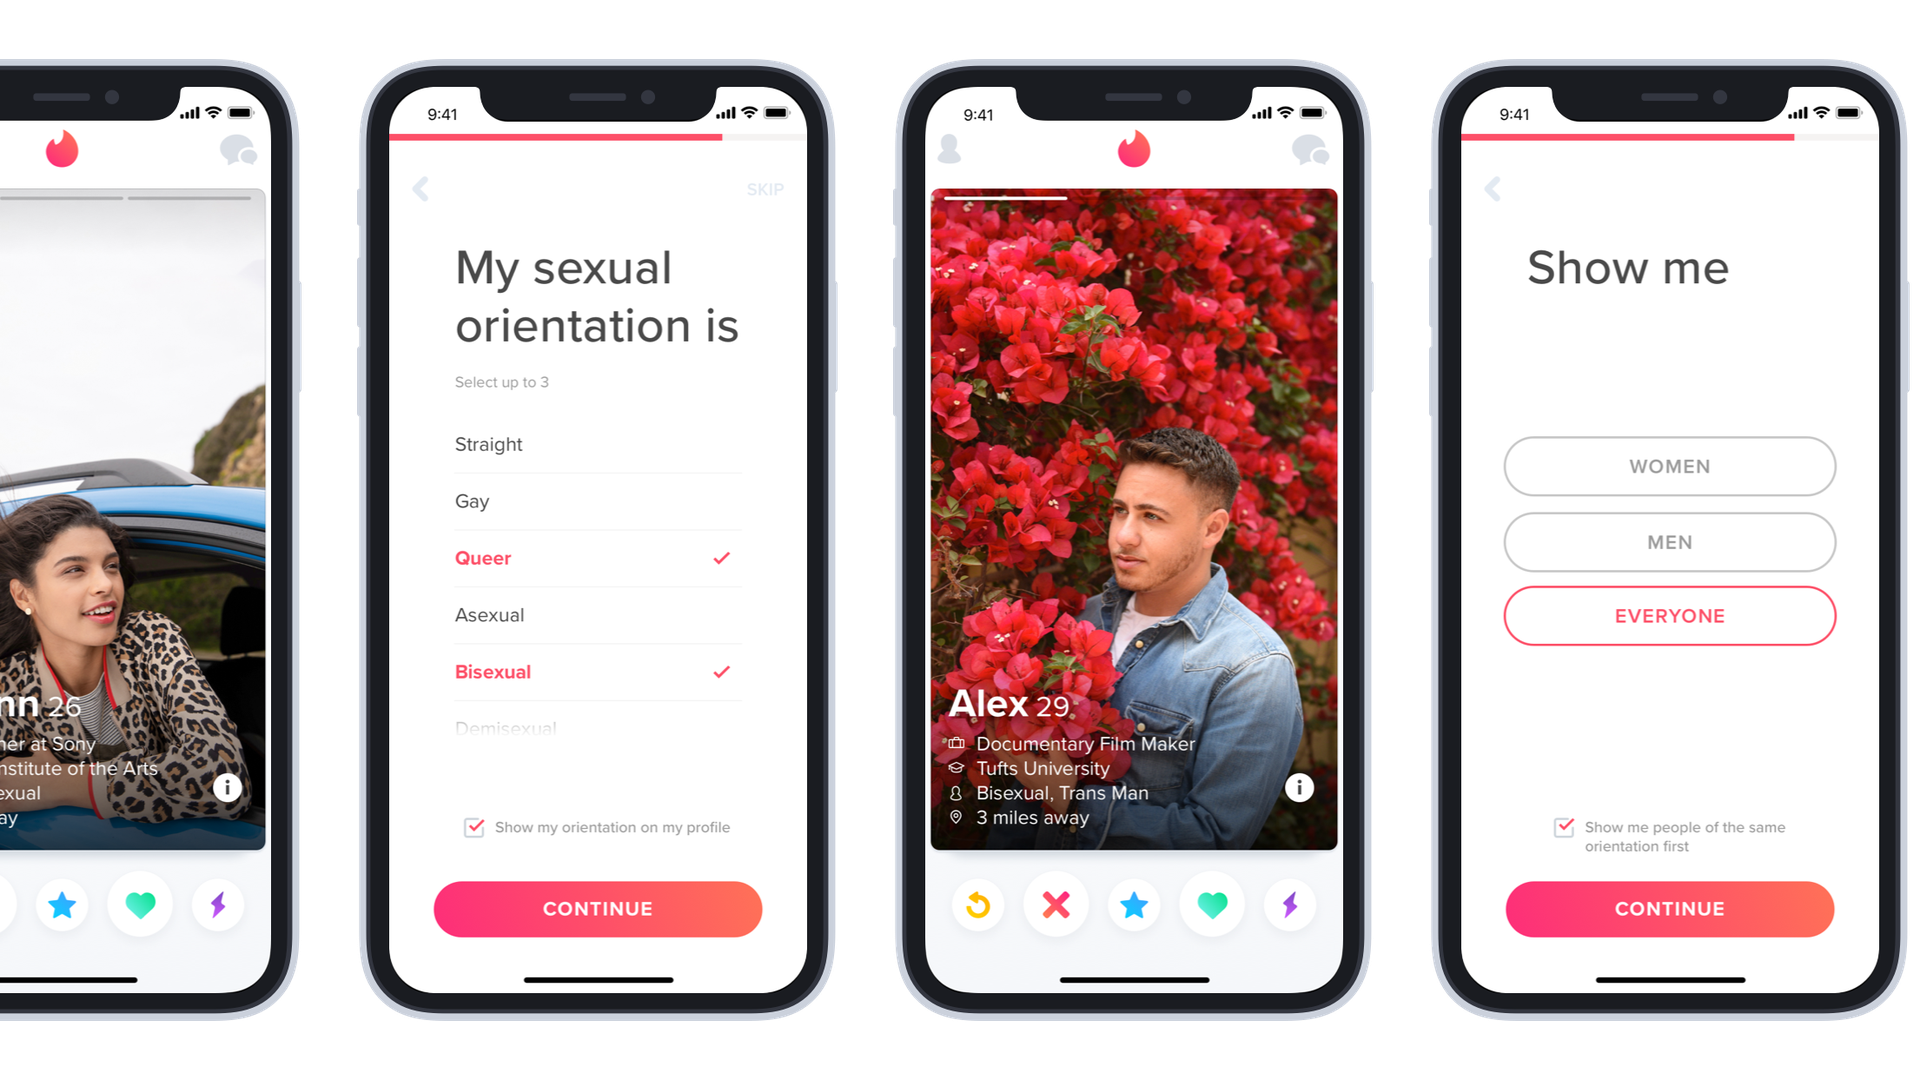 The new sexual orientation options offered in the Tinder app